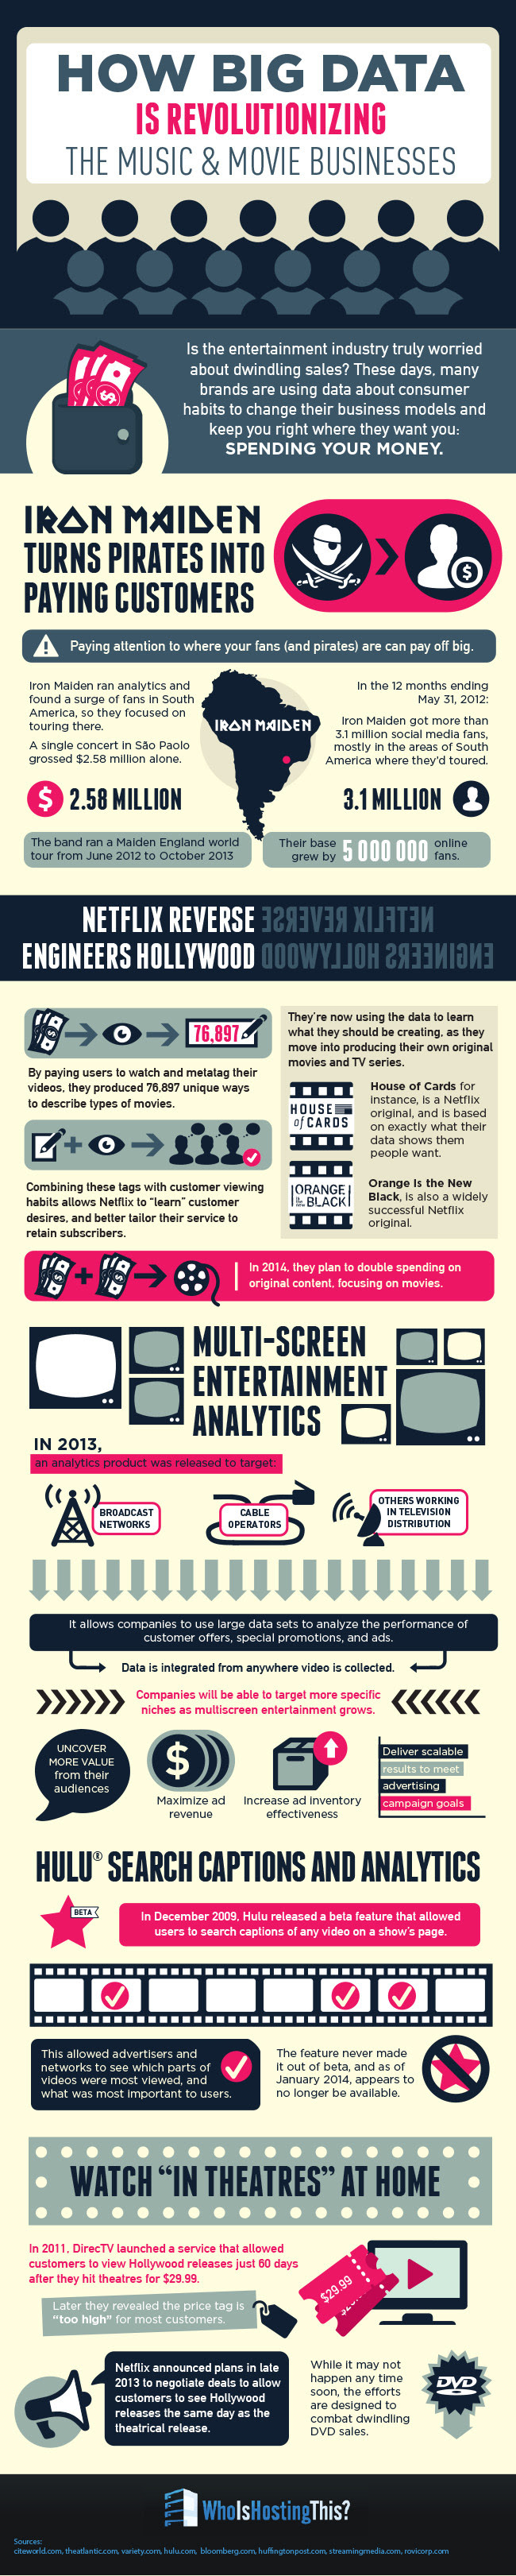 Infographic: How Big Data is Revolutionizing the Music and Movie Business #infographic